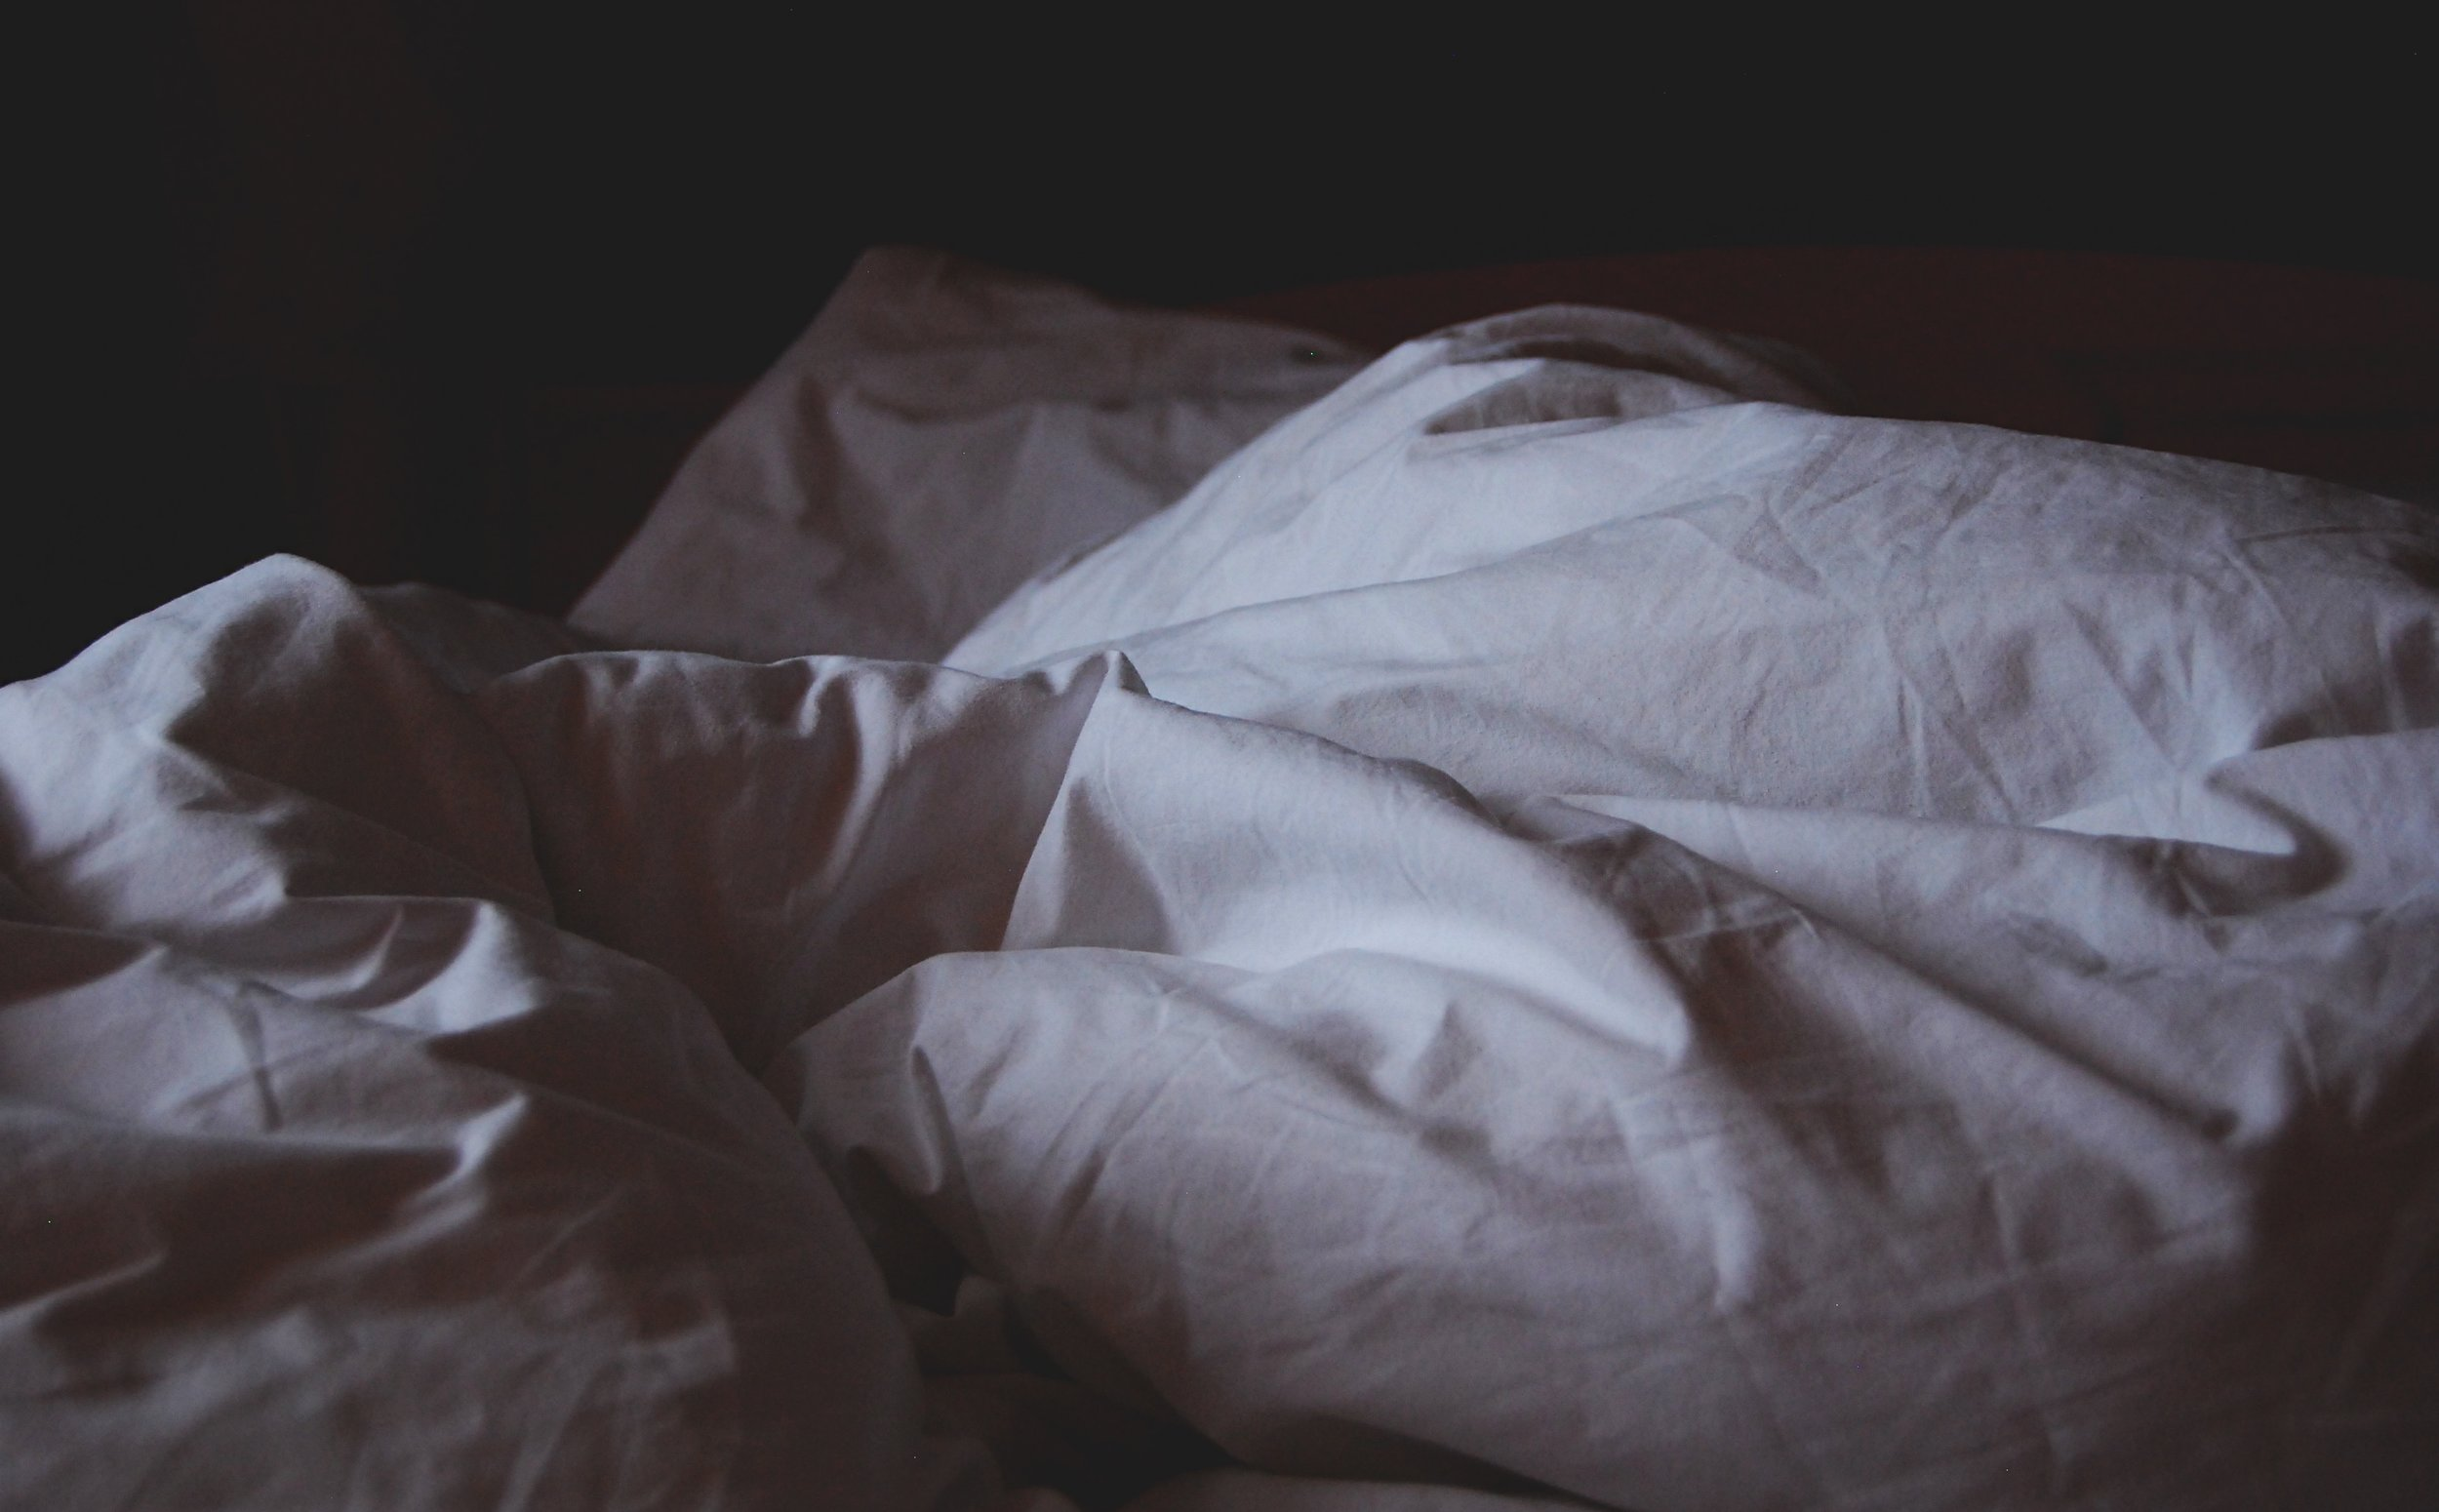 4) Middle of the night waking  - If you wake up during the early hours, don't stay in bed. Your brain will very quickly start to think that this is normal behaviour so you need to break the association.  If after twenty minutes of waking you're still wide awake, get out of bed and read in another room in dim light. Only go back to bed when you're very tired. If you absolutely cannot get out of bed, try meditation. An app such as Headspace or Calm will help get you started.